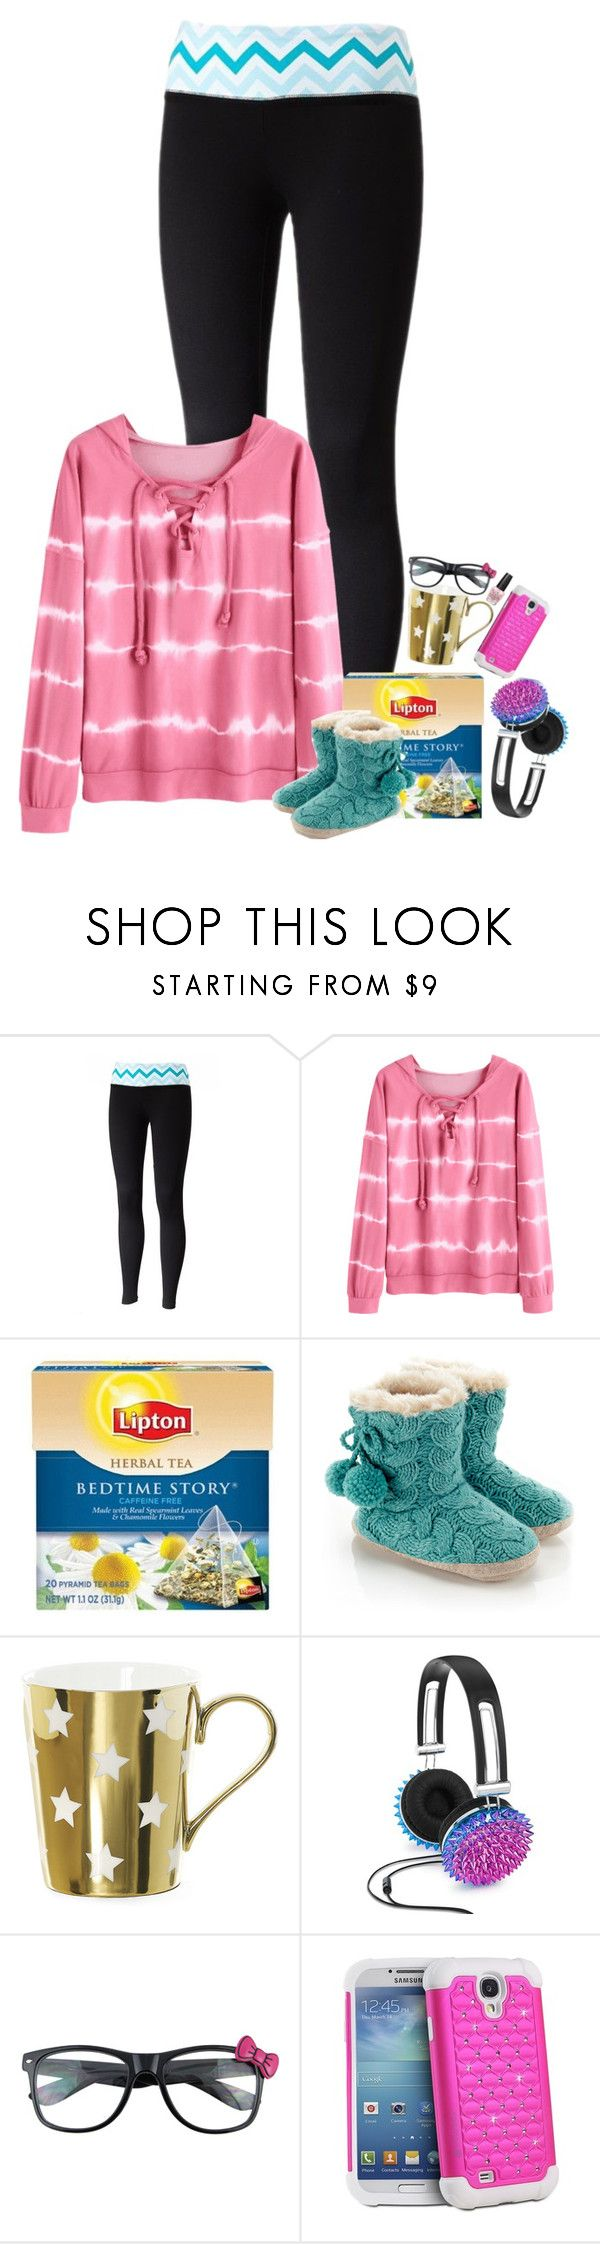 """Untitled #1327"" by emmzizleez888 ❤ liked on Polyvore featuring SO, Lipton, Accessorize, Miss Étoile, Celebrate Shop, Samsung, OPI and vintage"